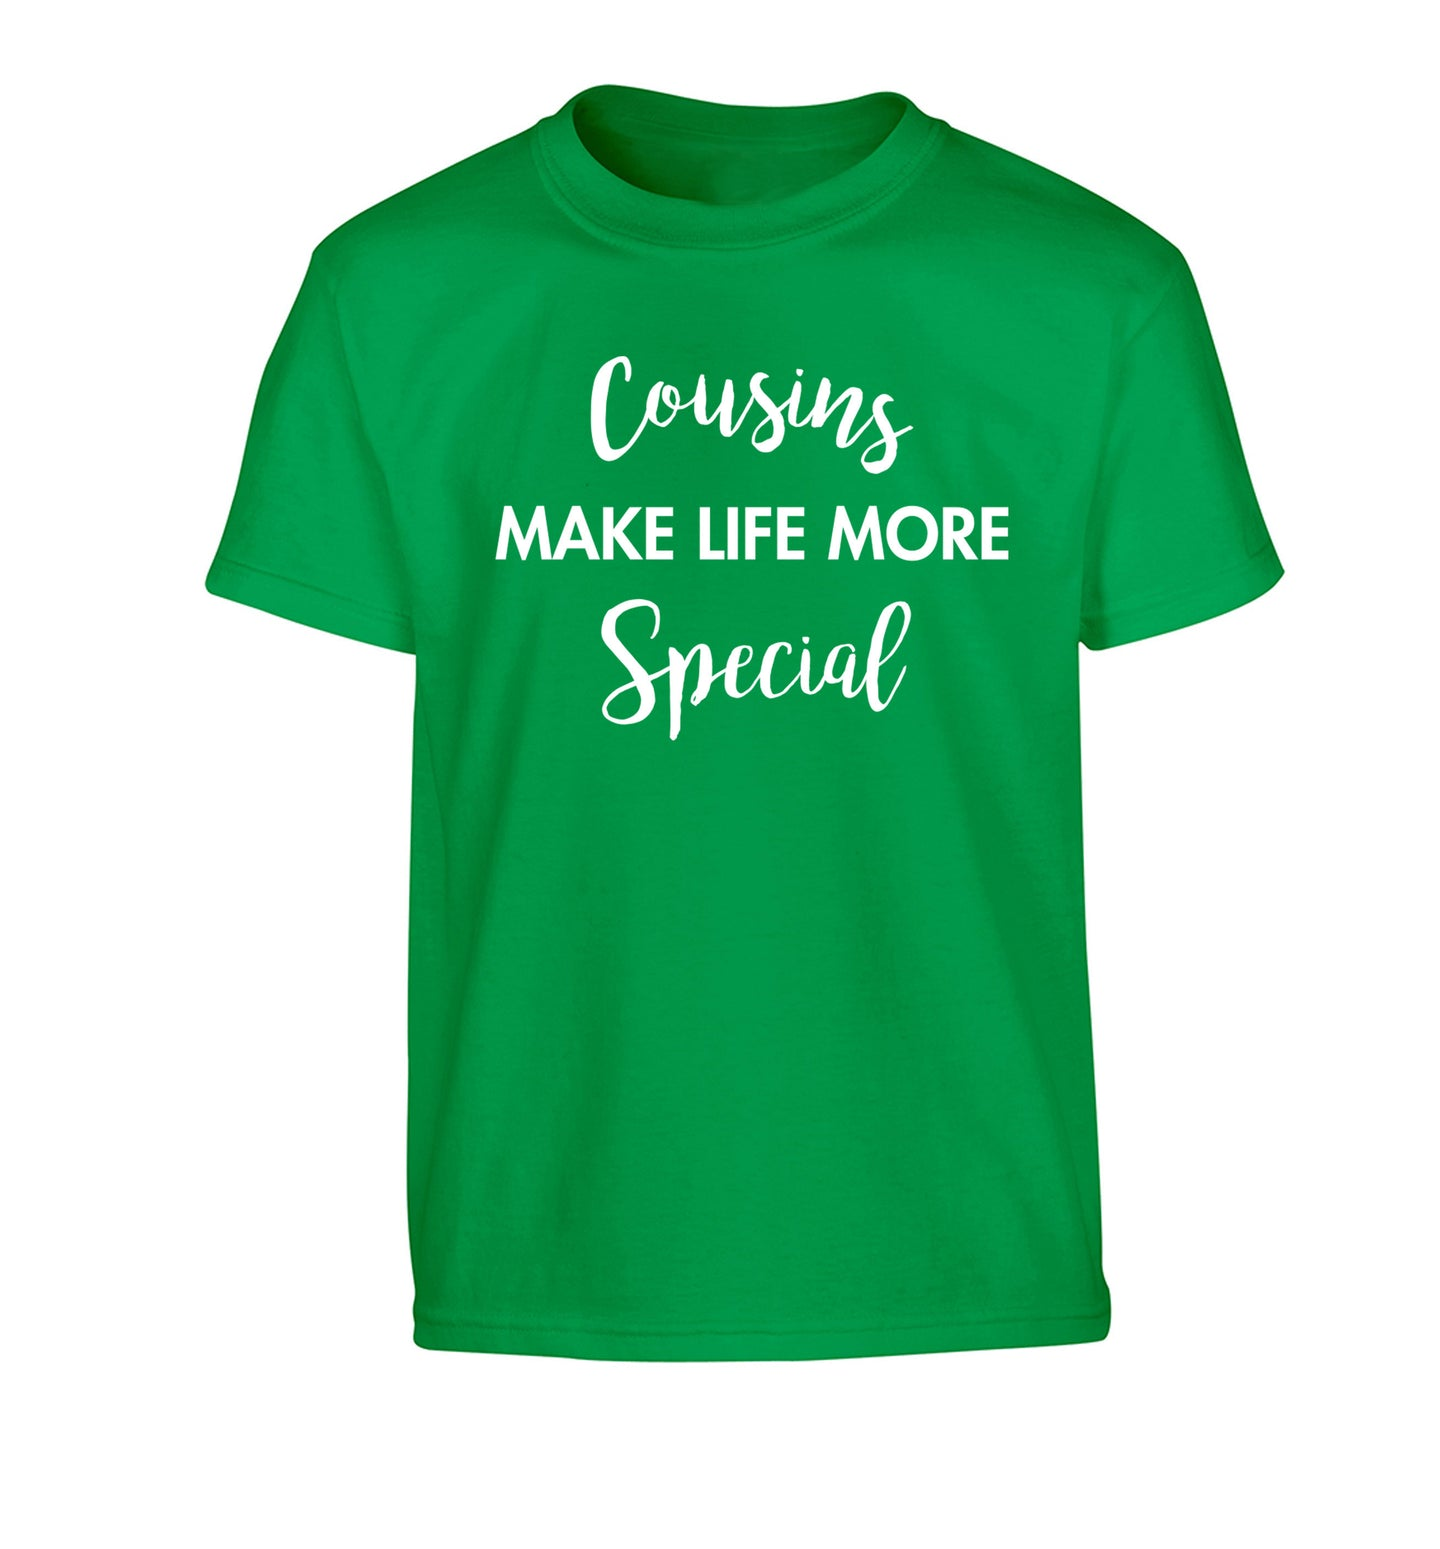 Cousins make life more special Children's green Tshirt 12-14 Years